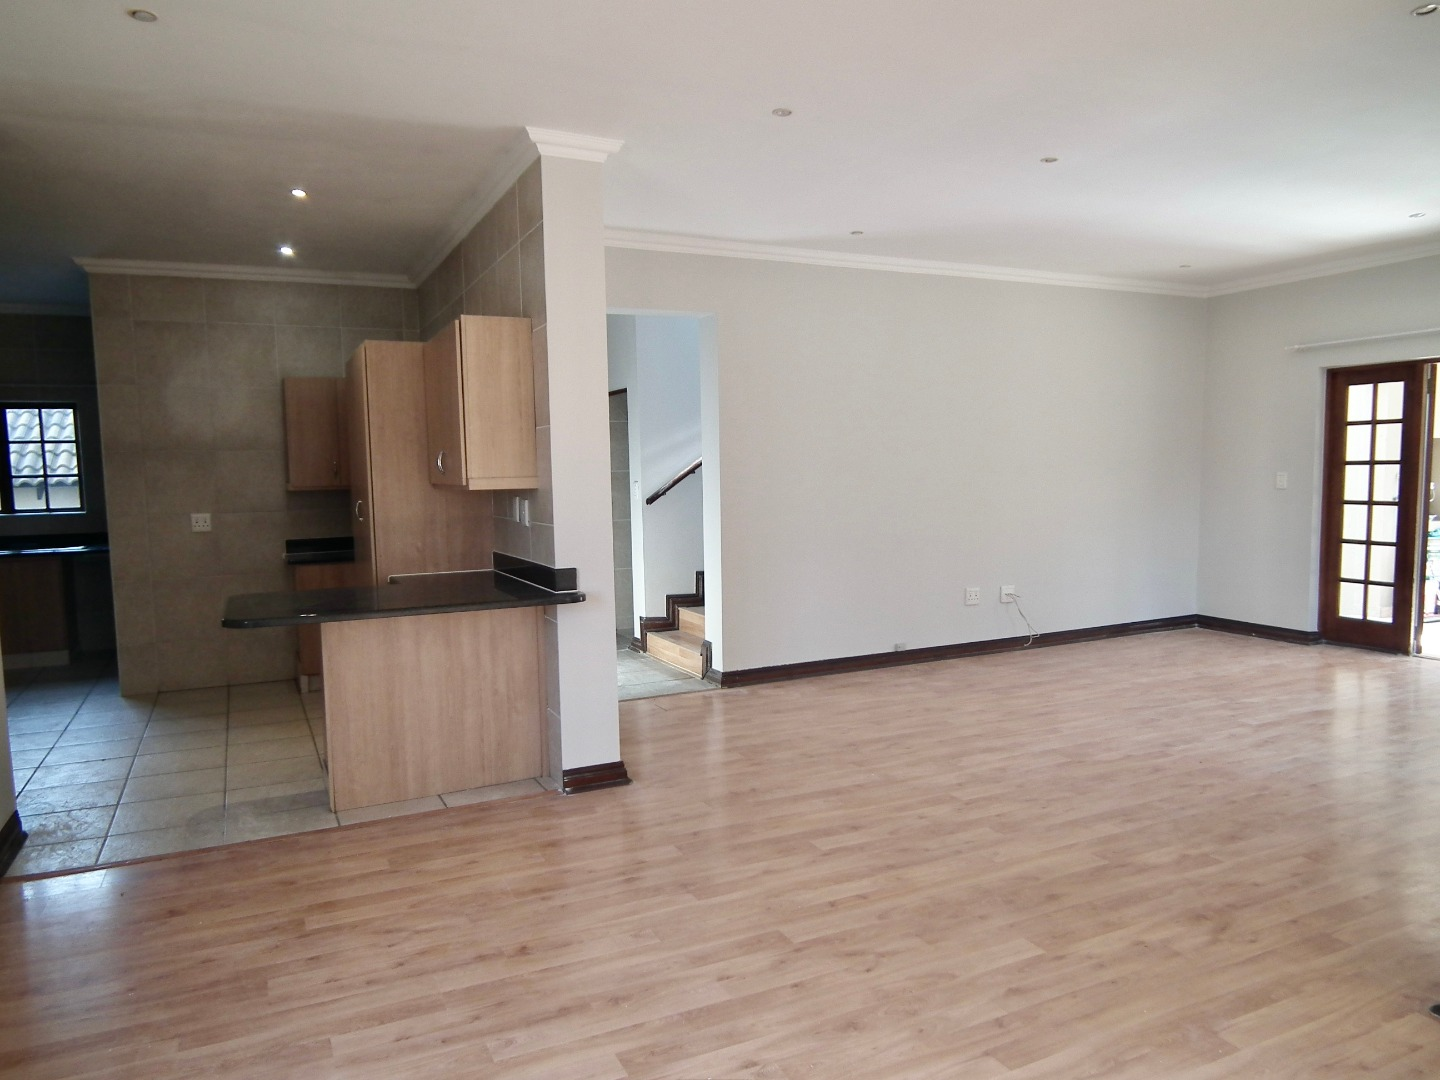 4 Bedroom House For Sale in Craigavon